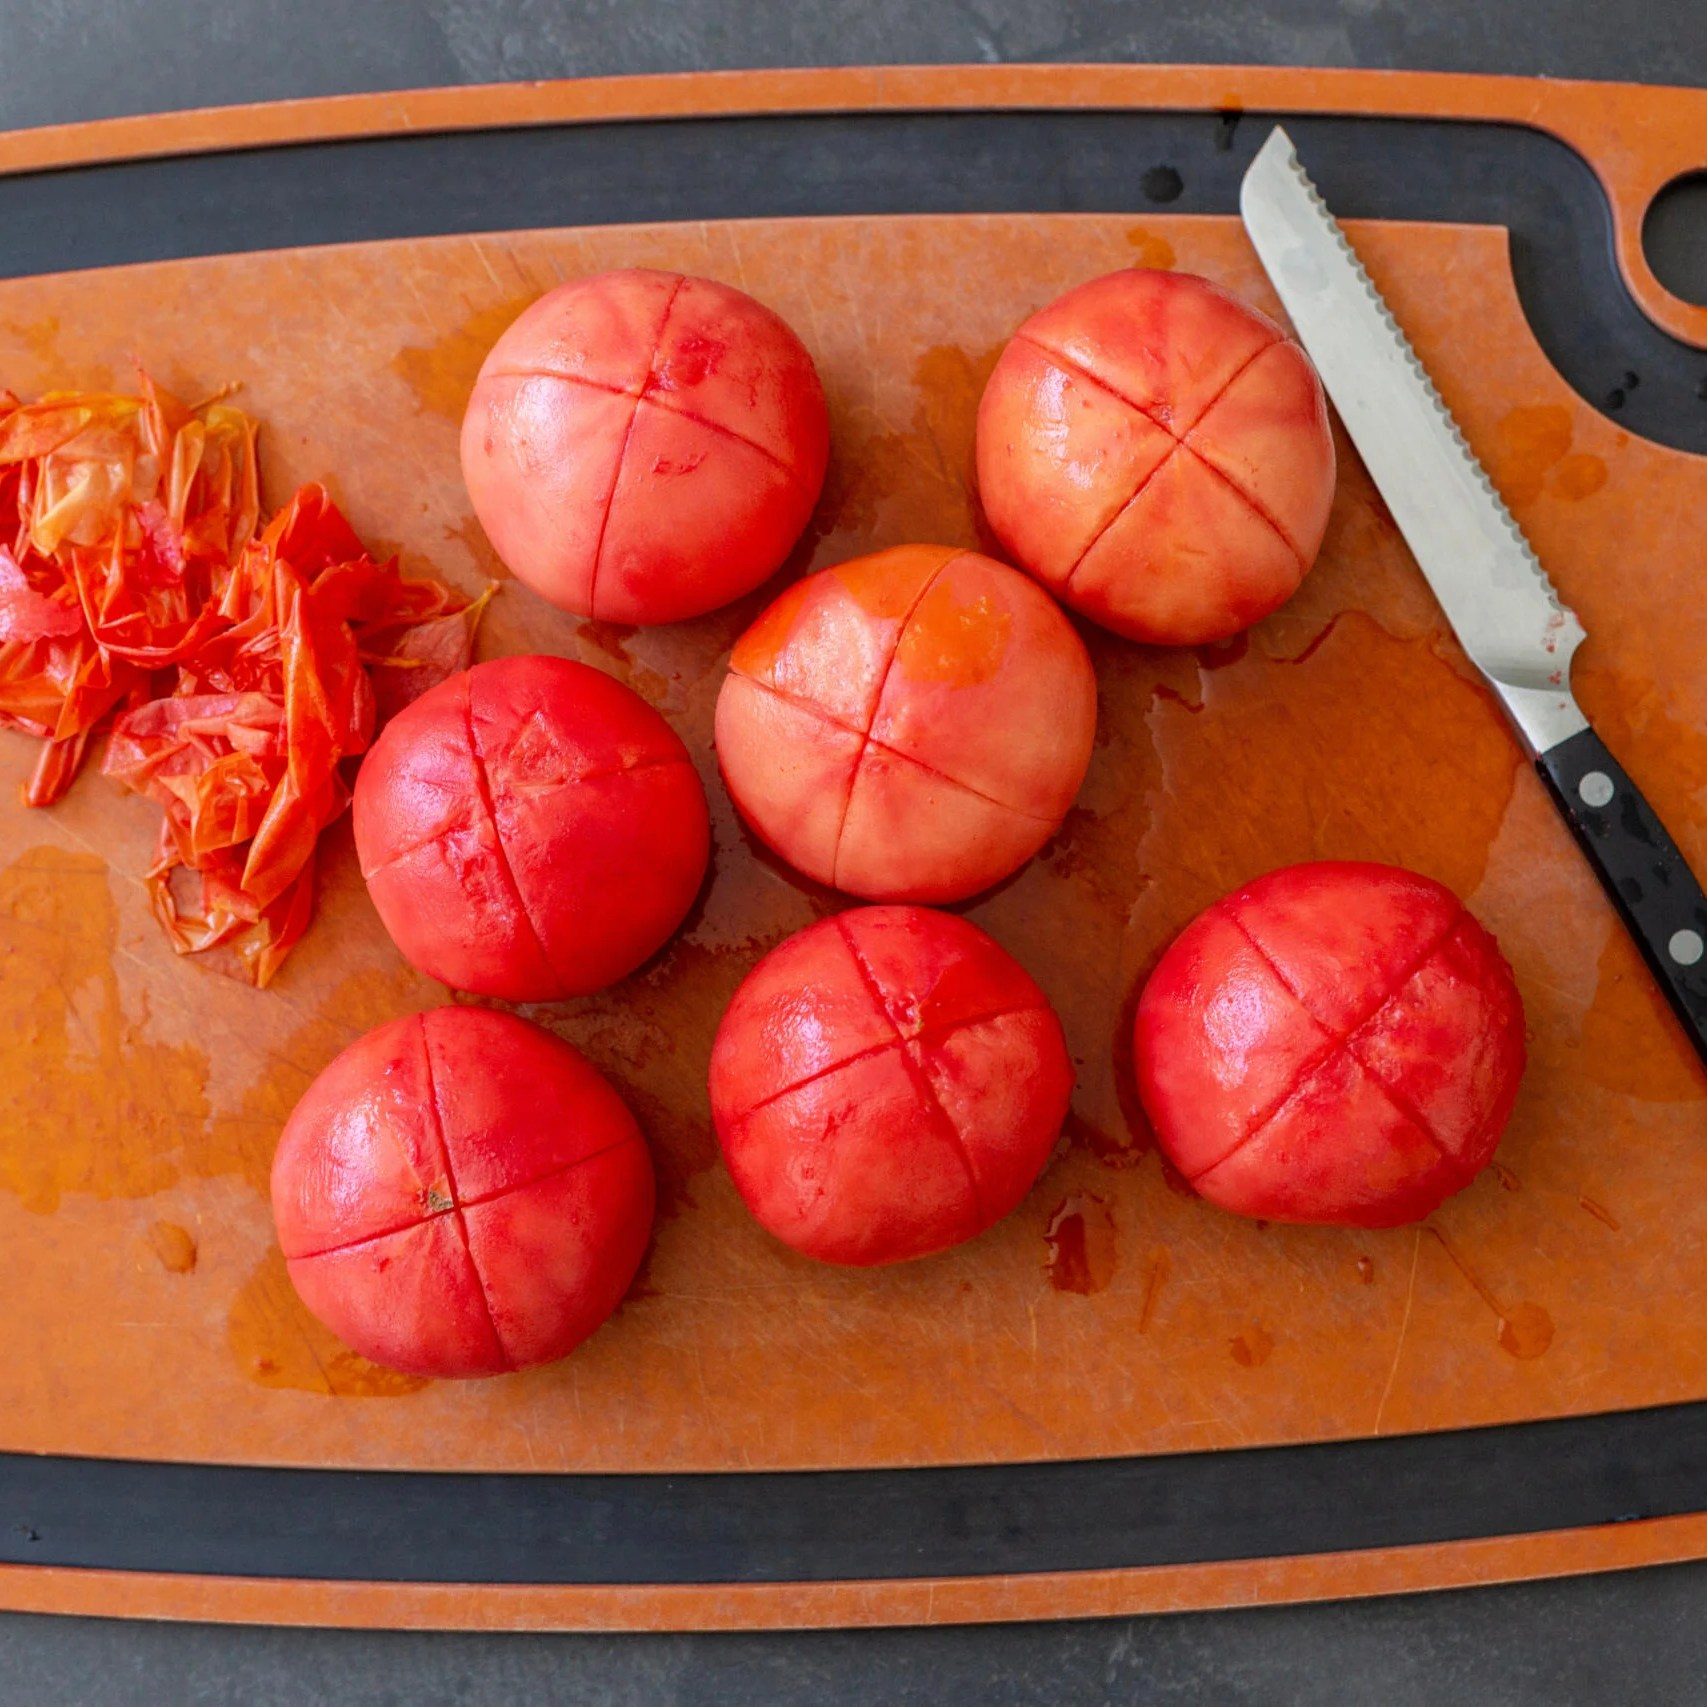 Tomatoes with a skin removed